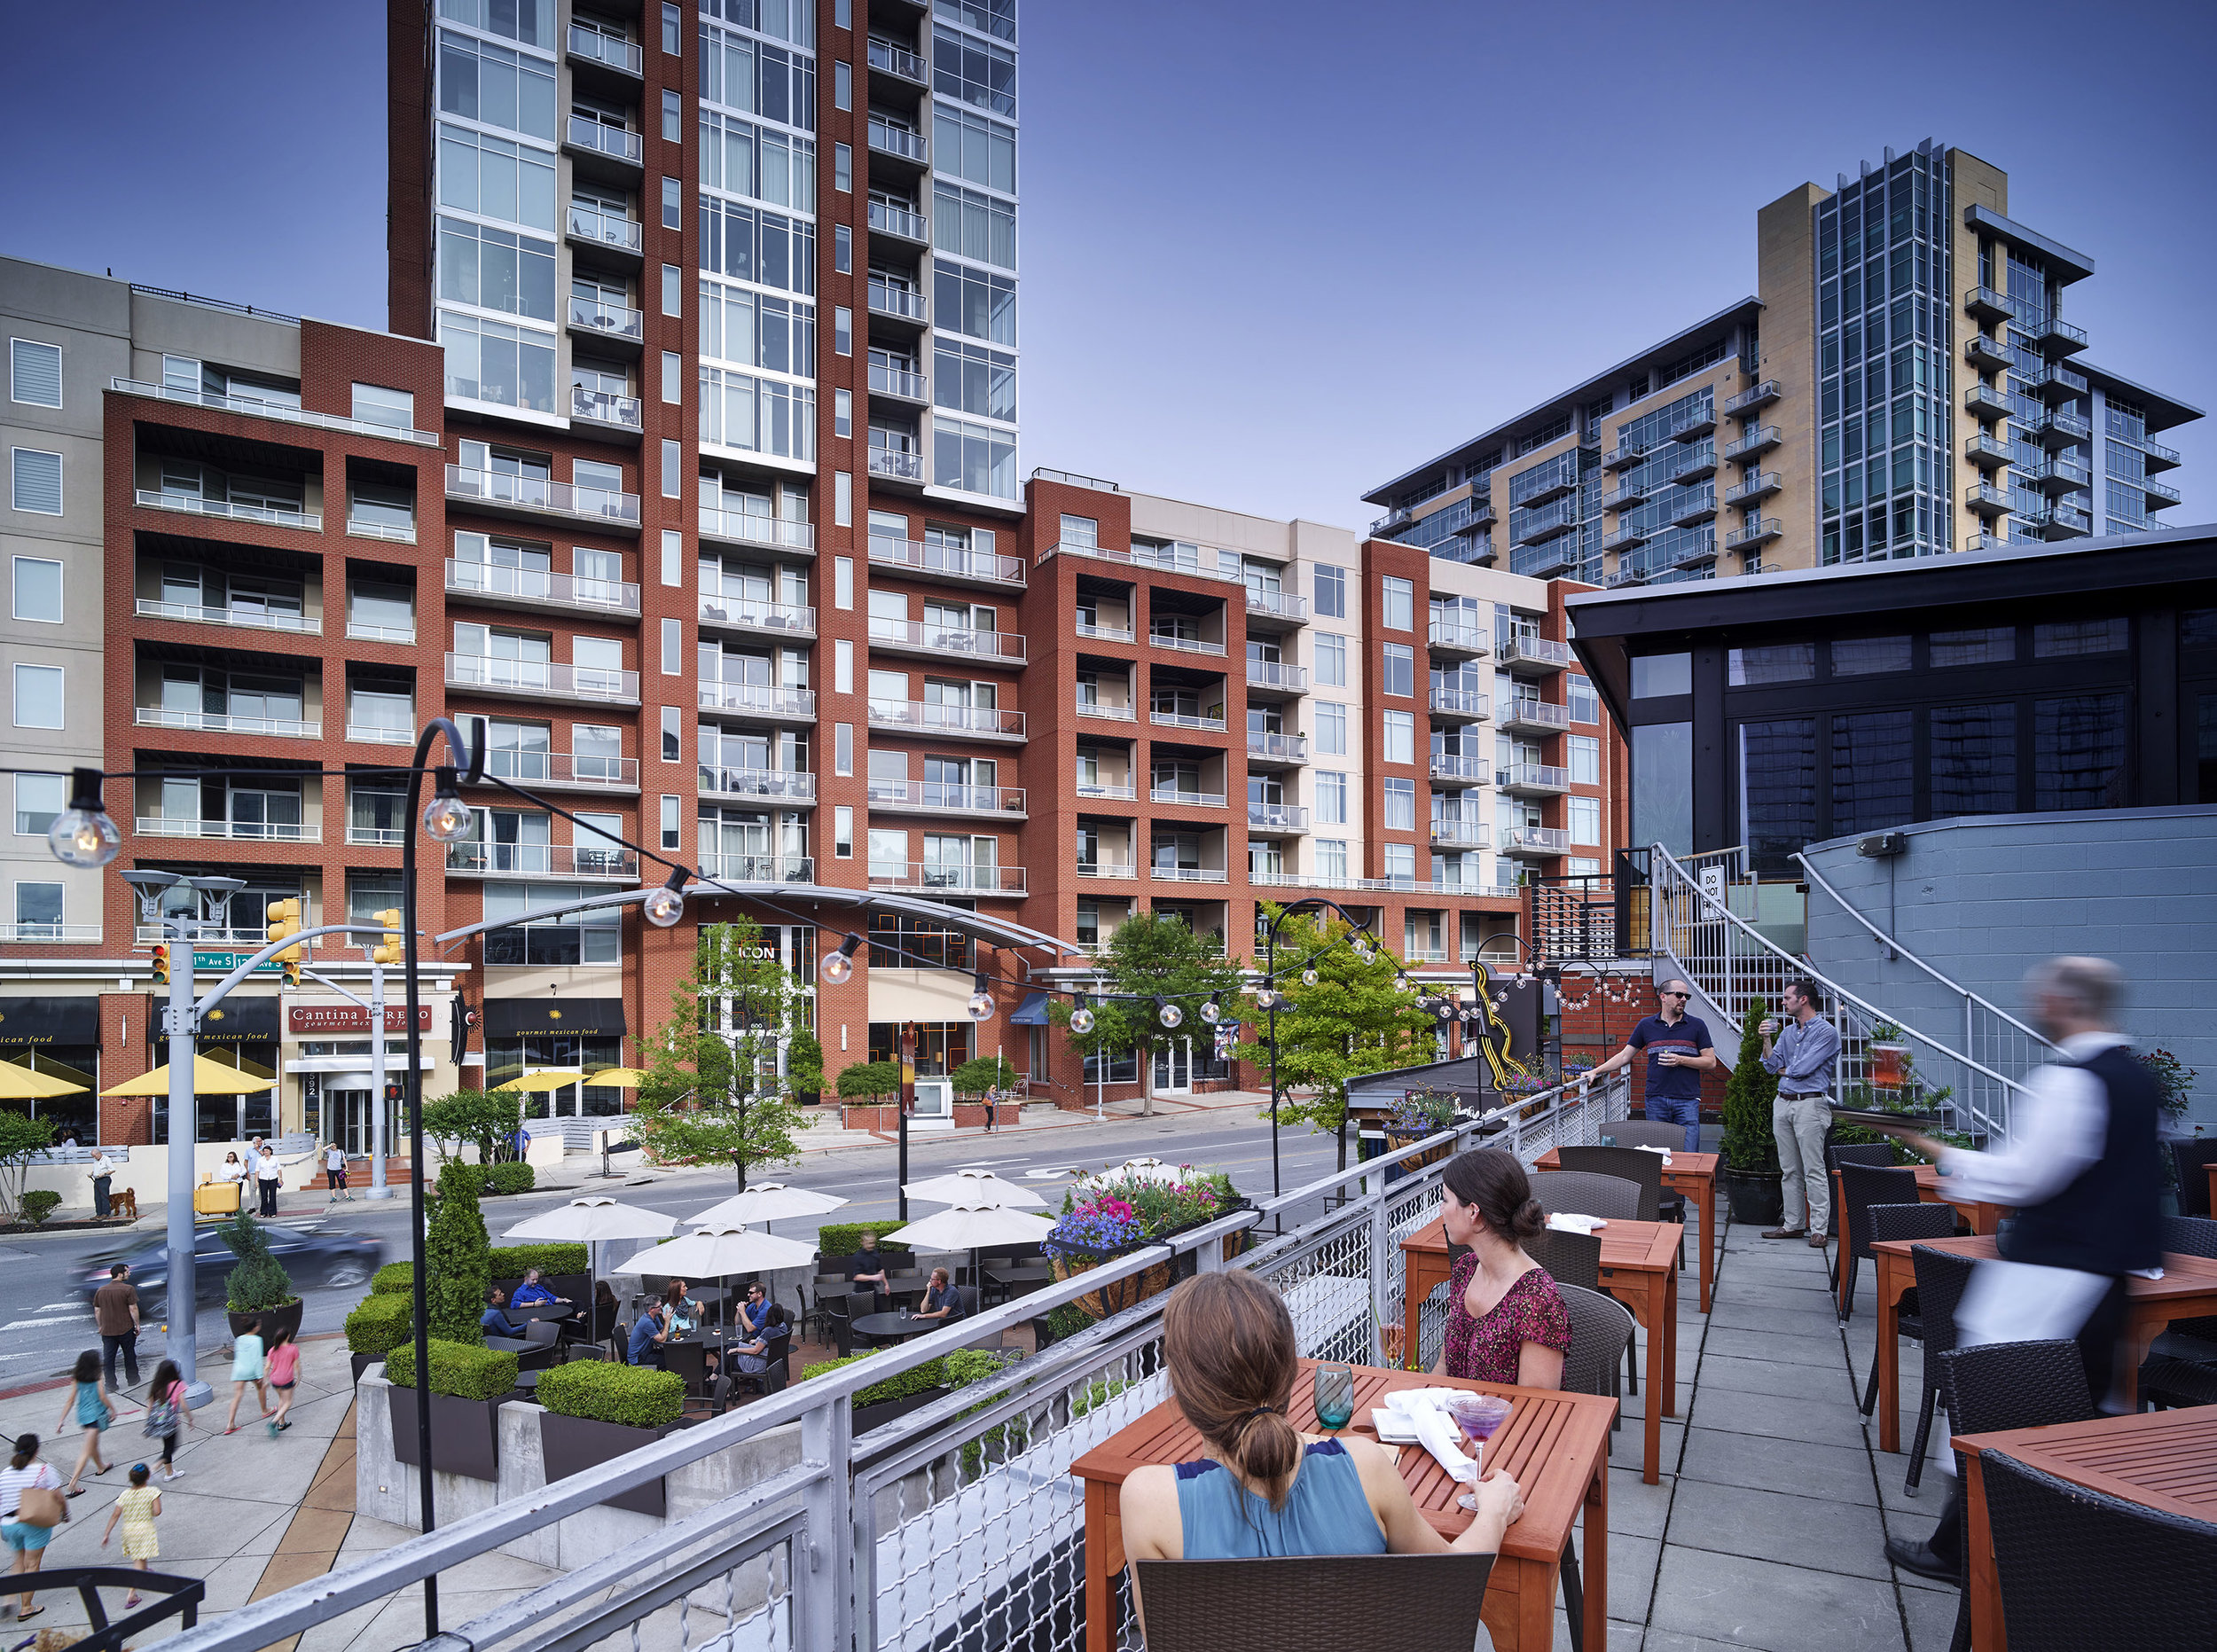 The Gulch - Eats and drinks for any dynamic